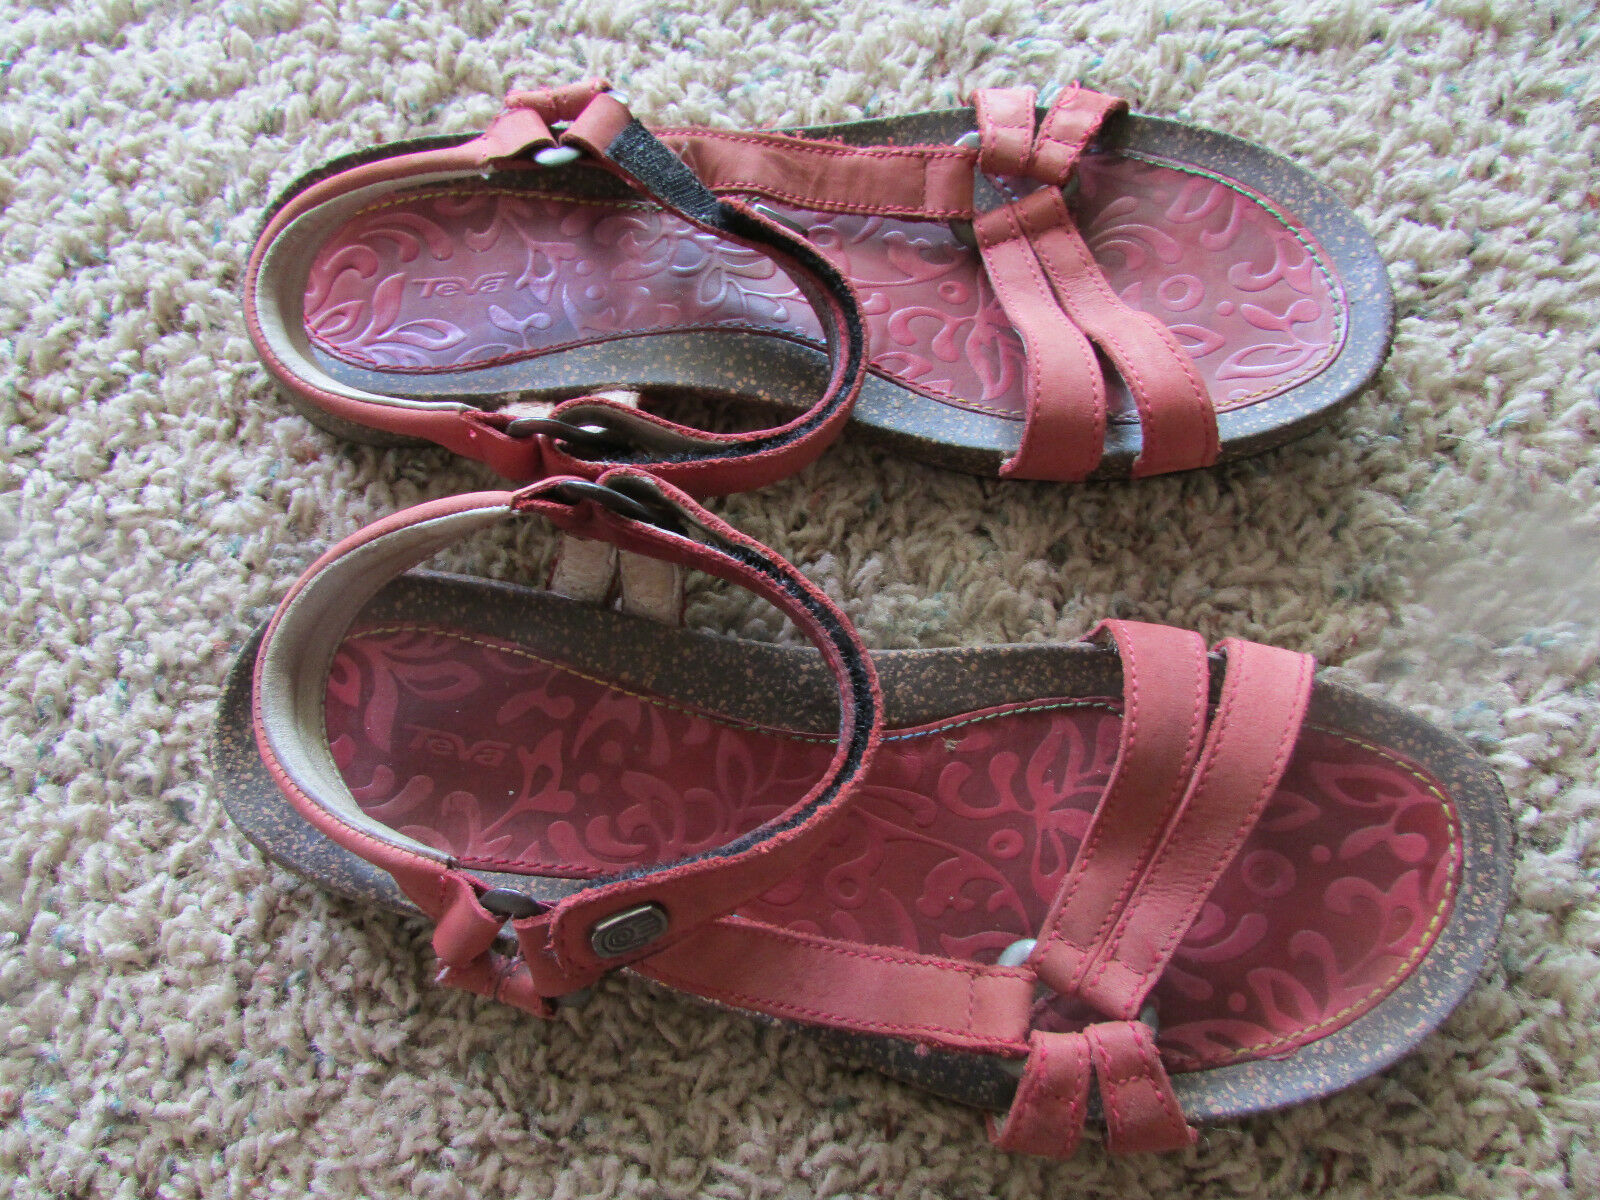 TEVA CORK STRAPPY SANDALS WOMENS 10 STYLE  6510 VENTURA  FREE SHIP